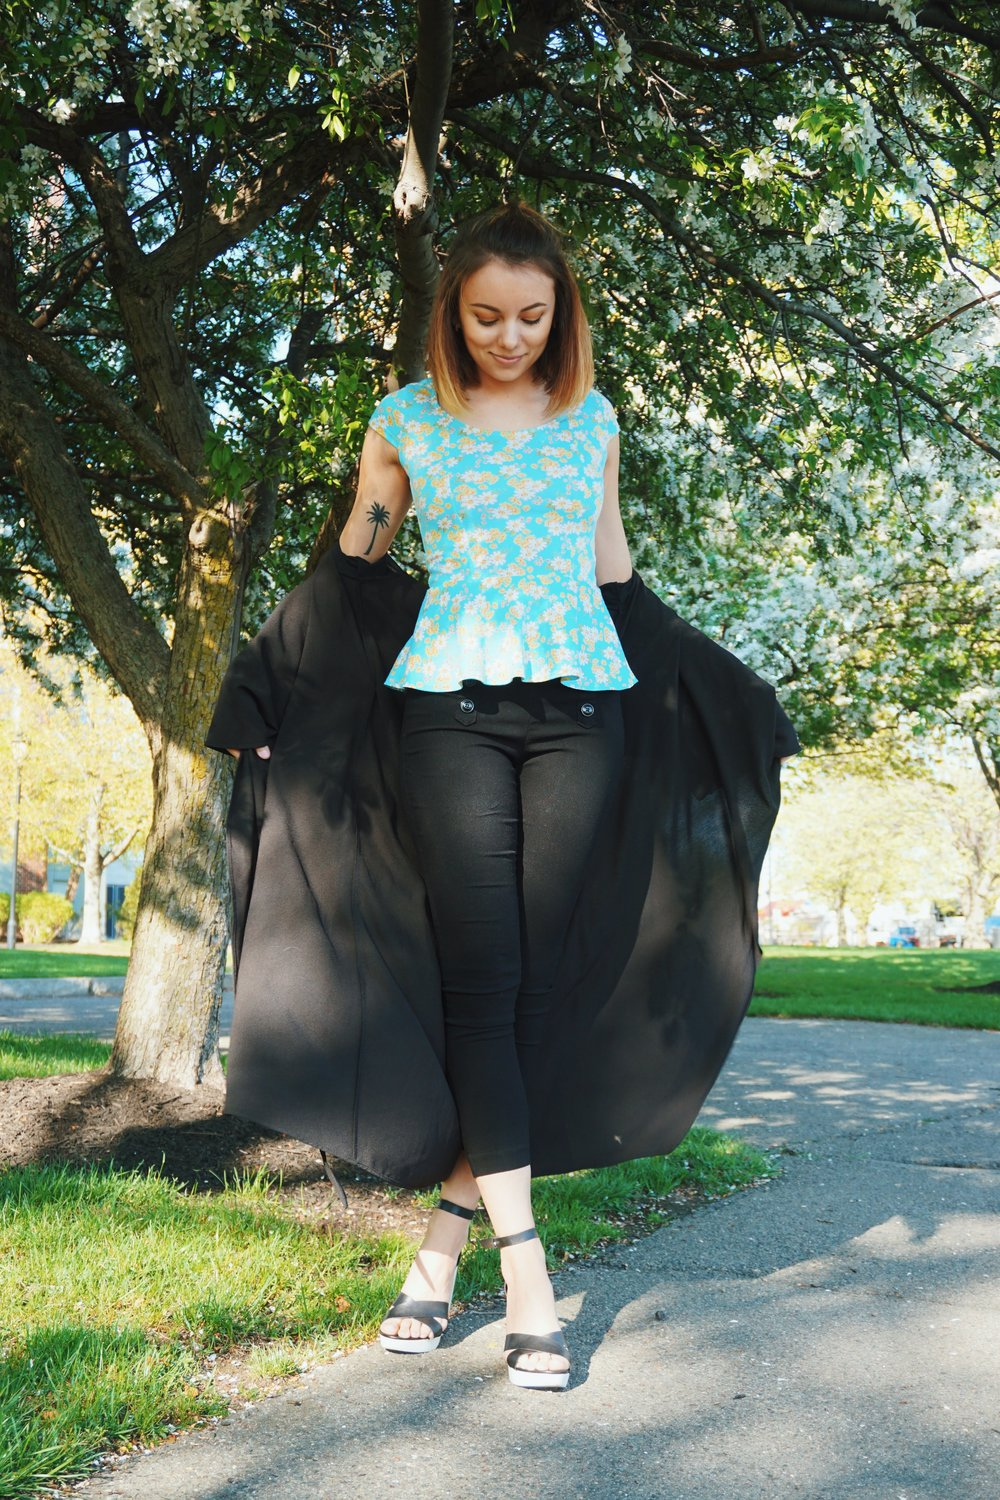 A photo of a girl in a cute blue top with ruffles, black capris, black duster.